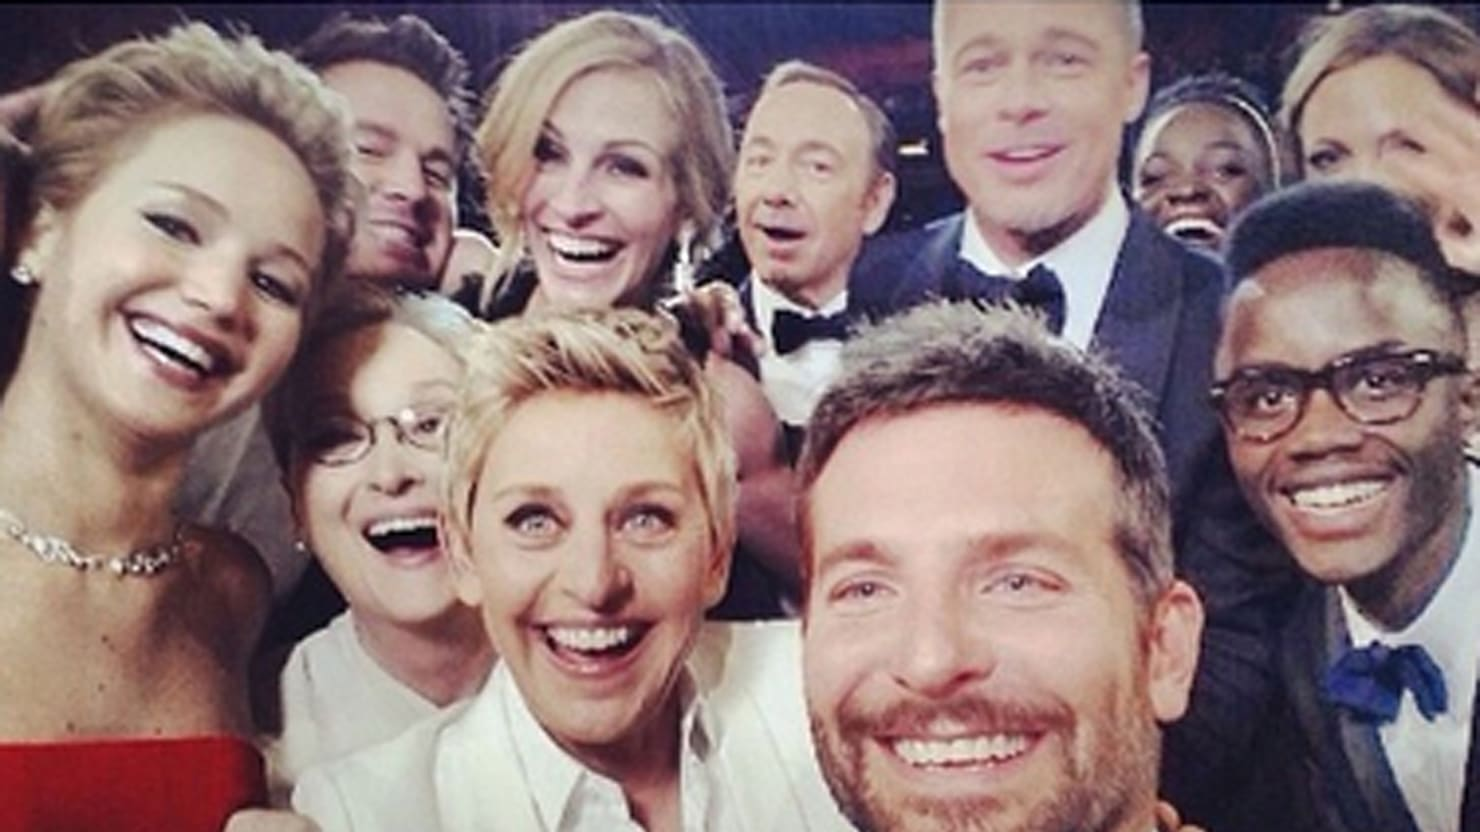 The Best Celebrity Instagrams of 2014